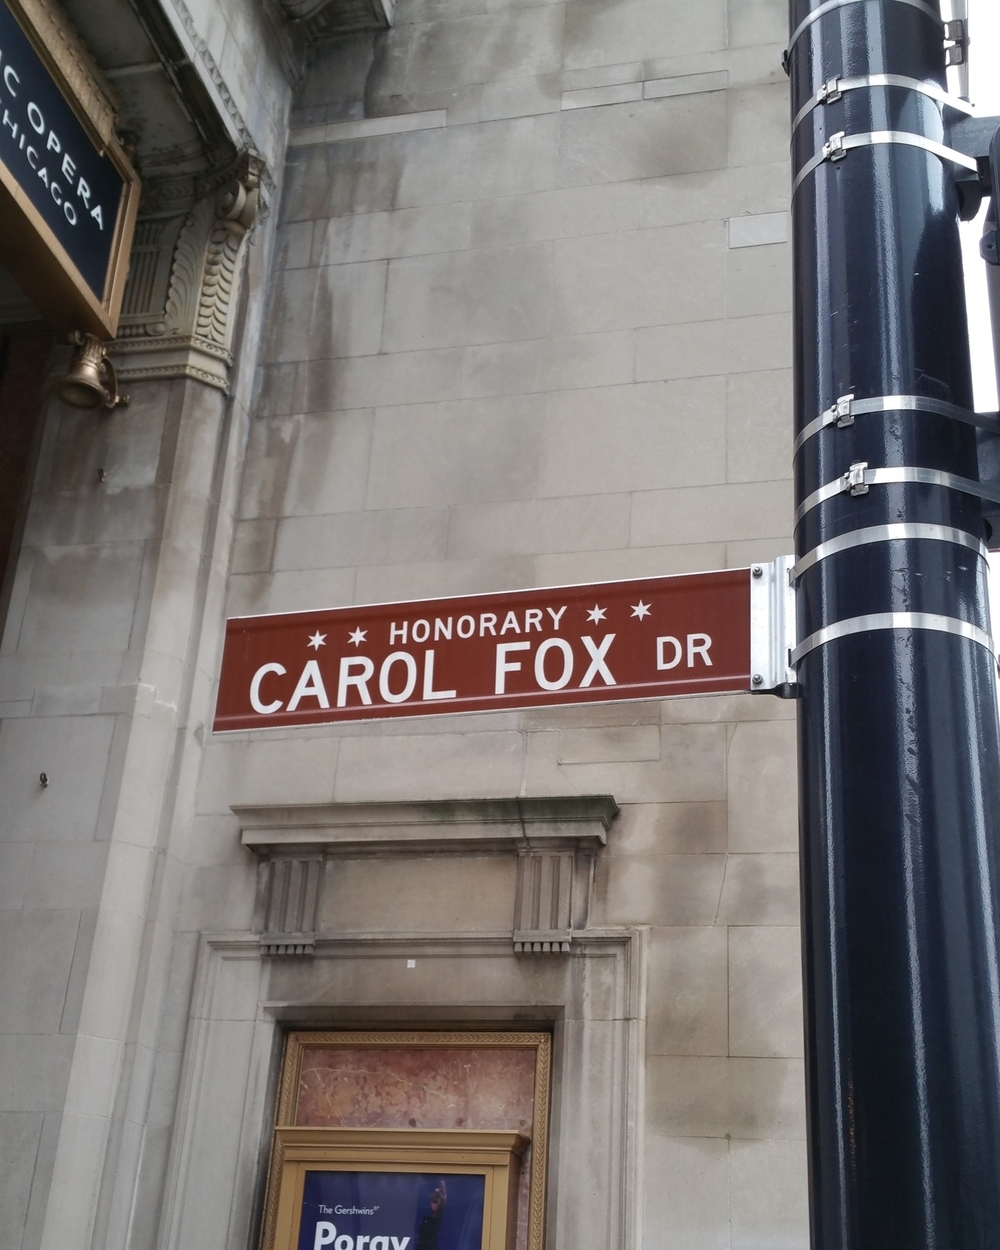 Carol Fox Dr - Honorary Chicago. Director of Lyric Opera Company